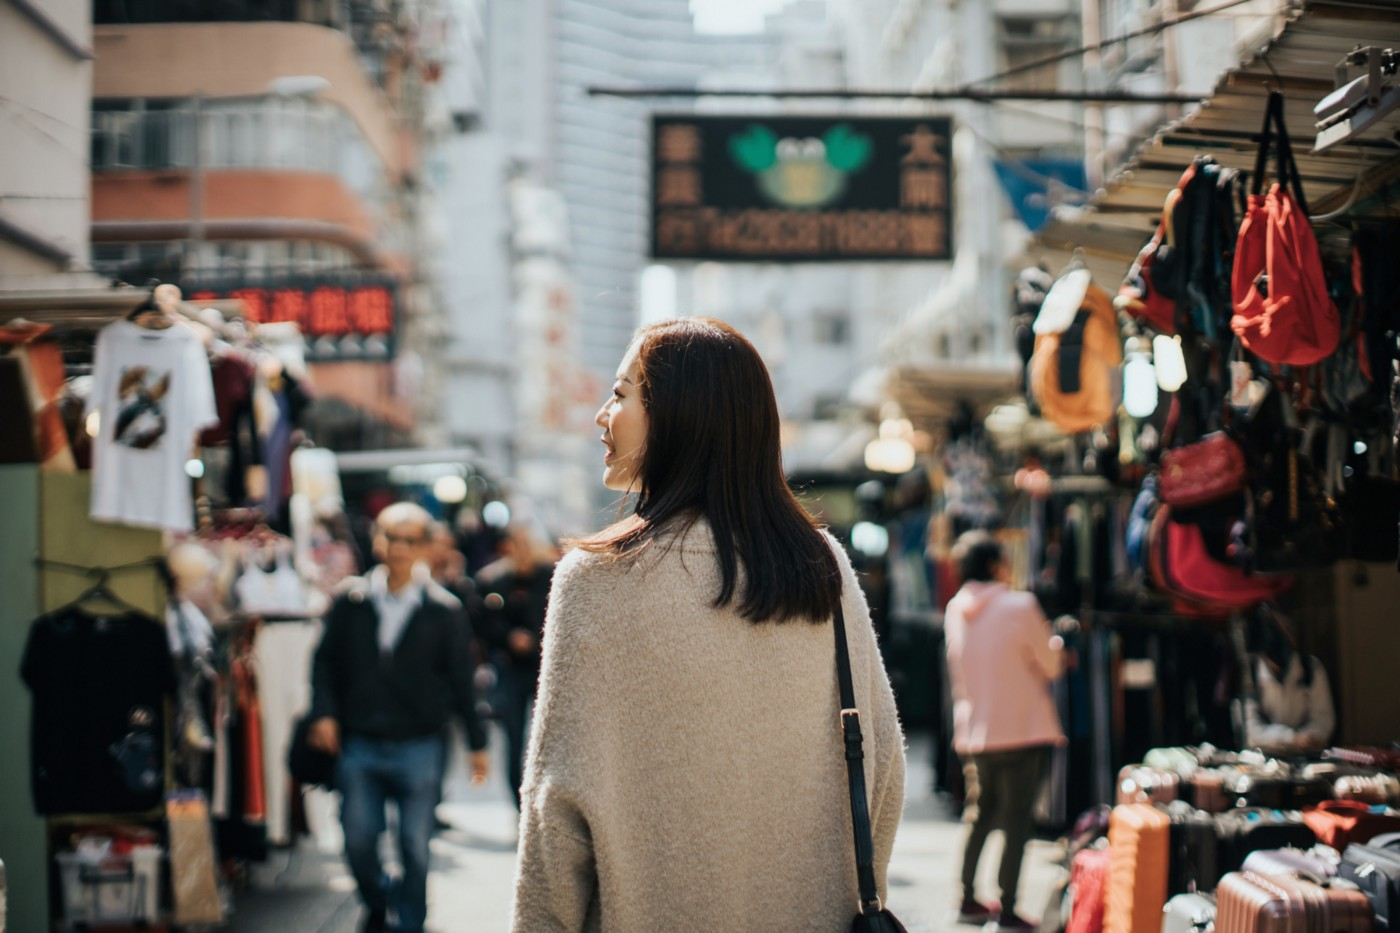 A photo of the back of a young Asian woman walking through a local market street in Hong Kong.